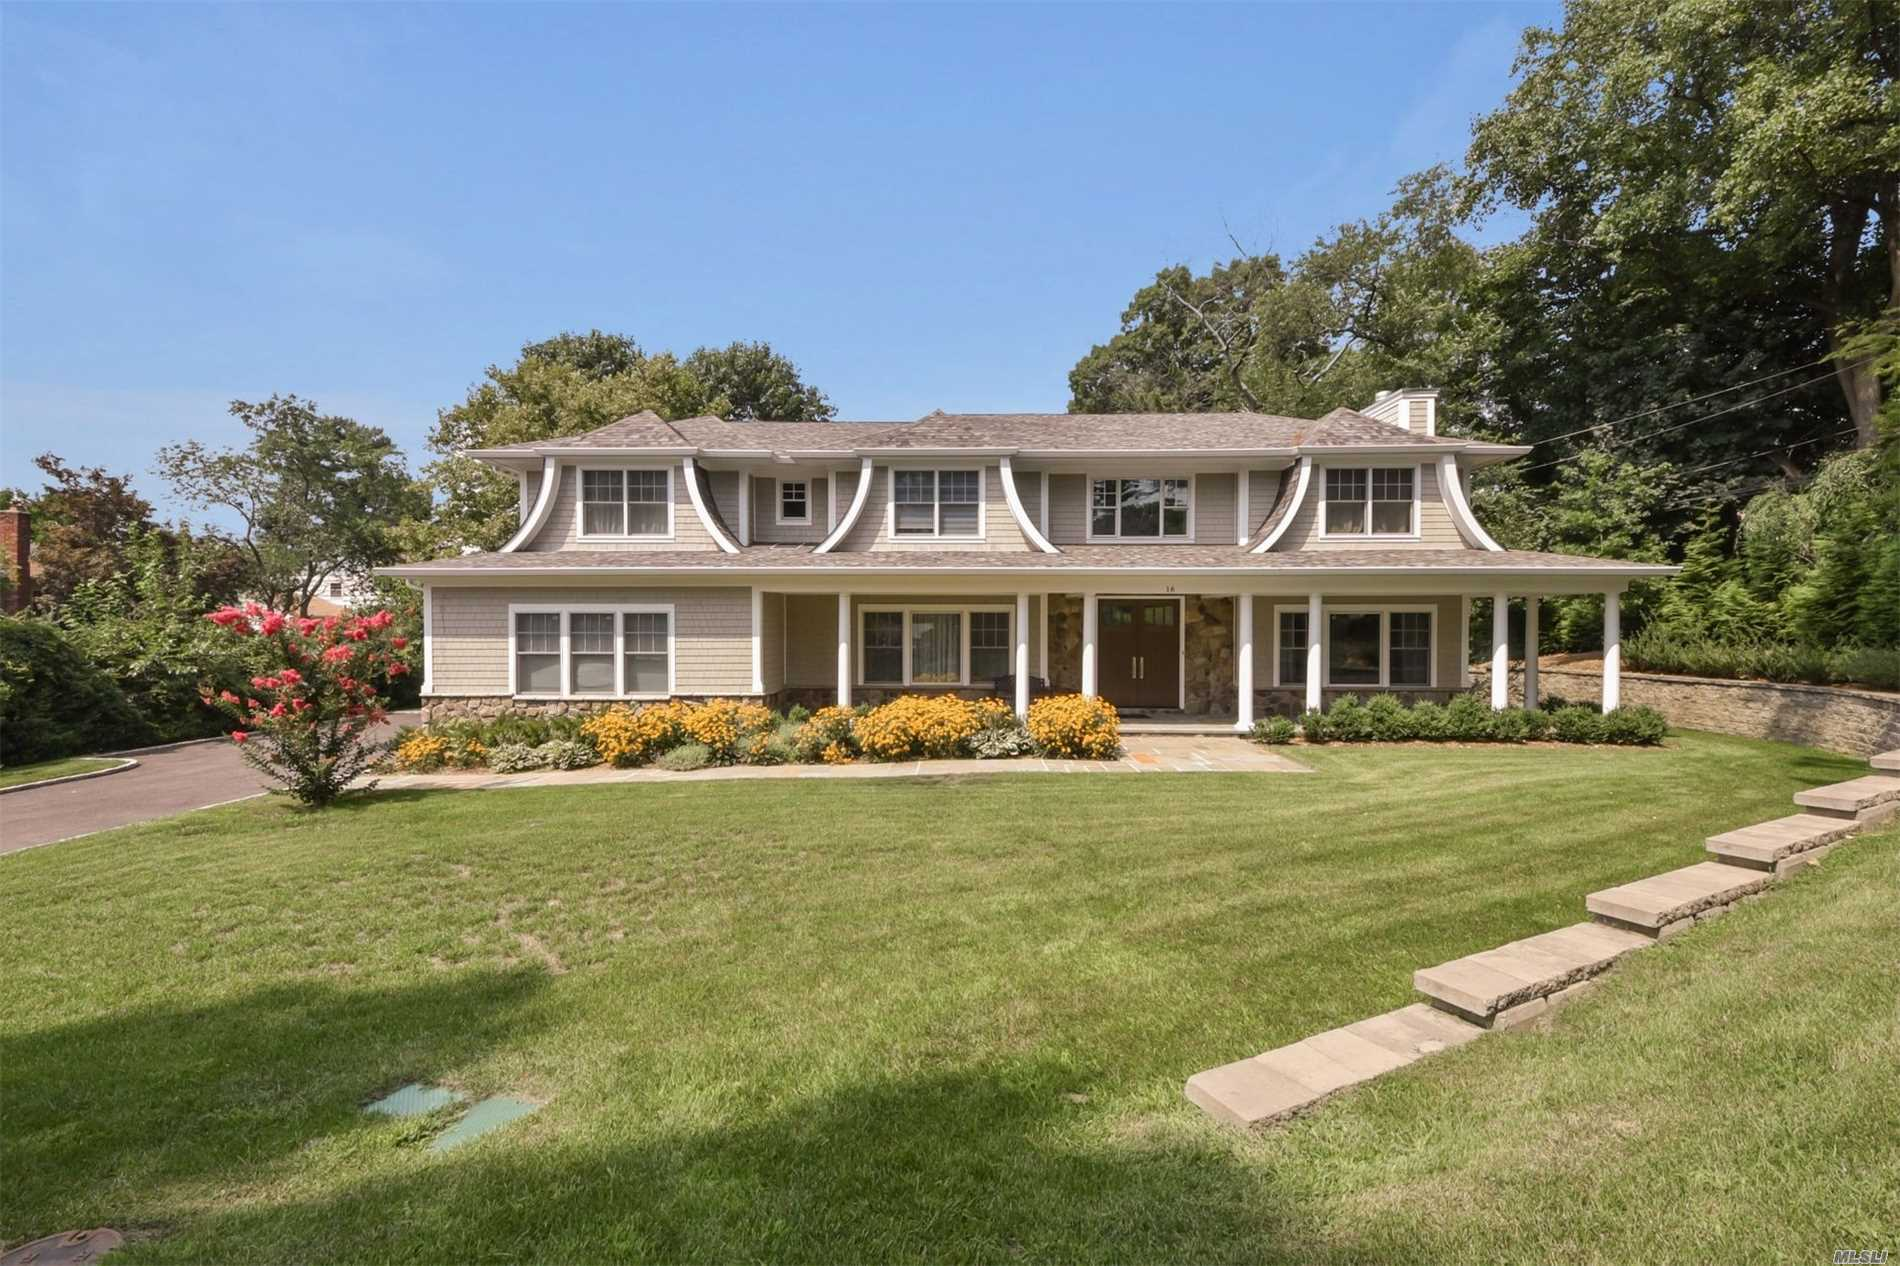 Photo of home for sale at 16 Talley Rd, East Hills NY